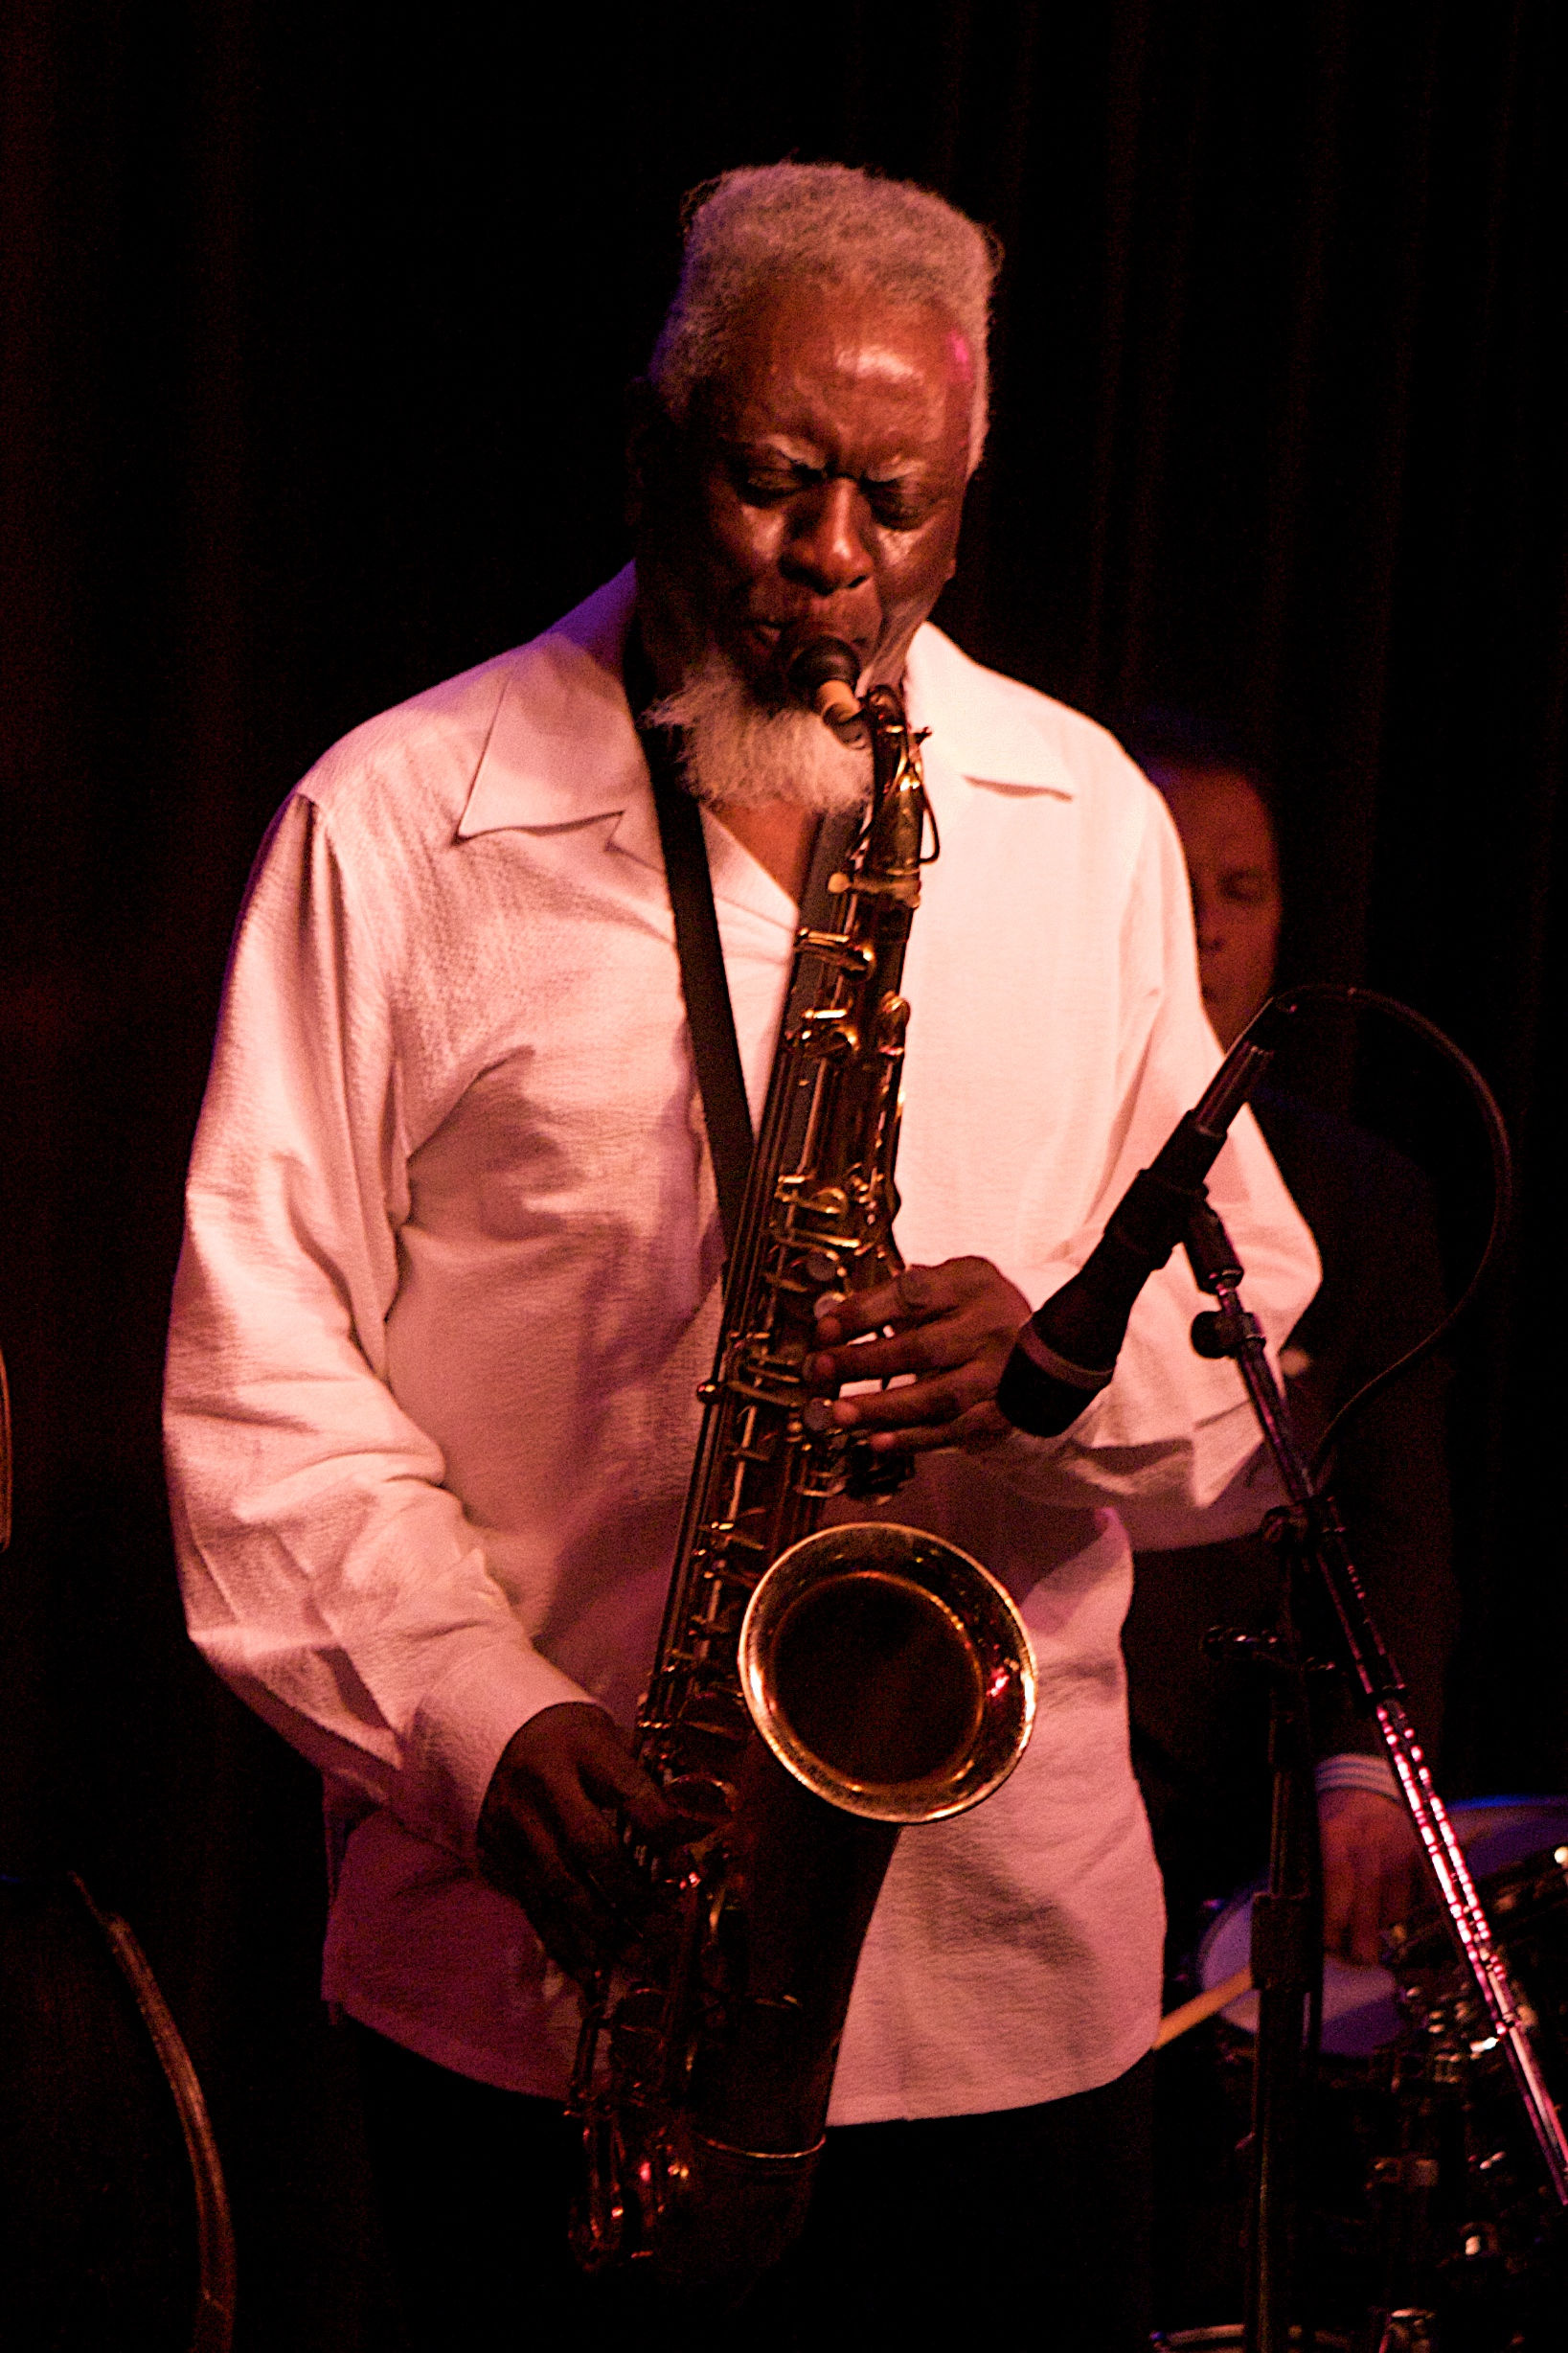 Pharoah Sanders at Birdland, NYC 3/20/12